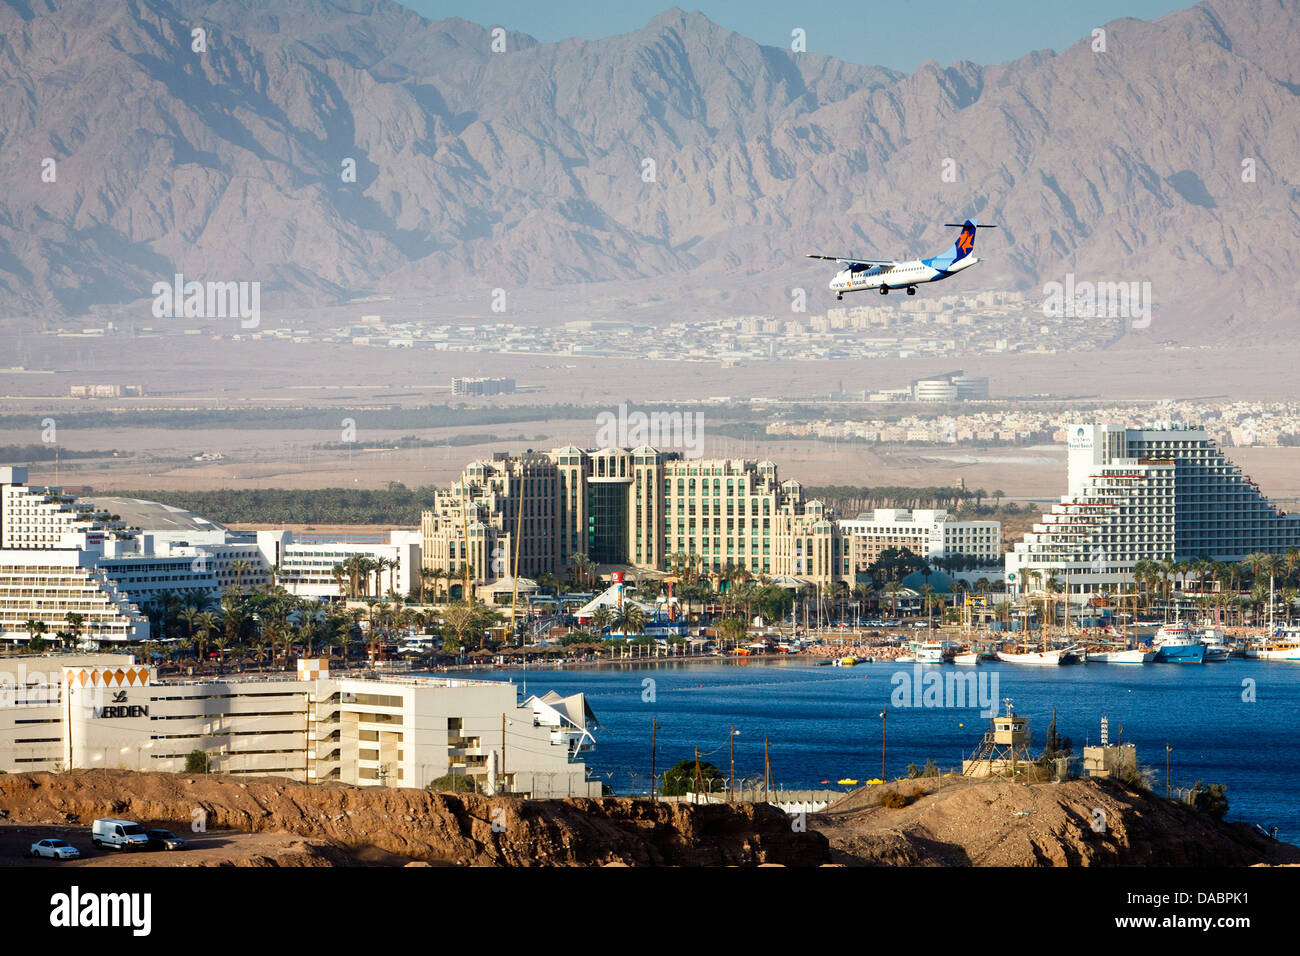 View over the Red Sea, beach and hotels in Eilat, Israel, Middle East - Stock Image